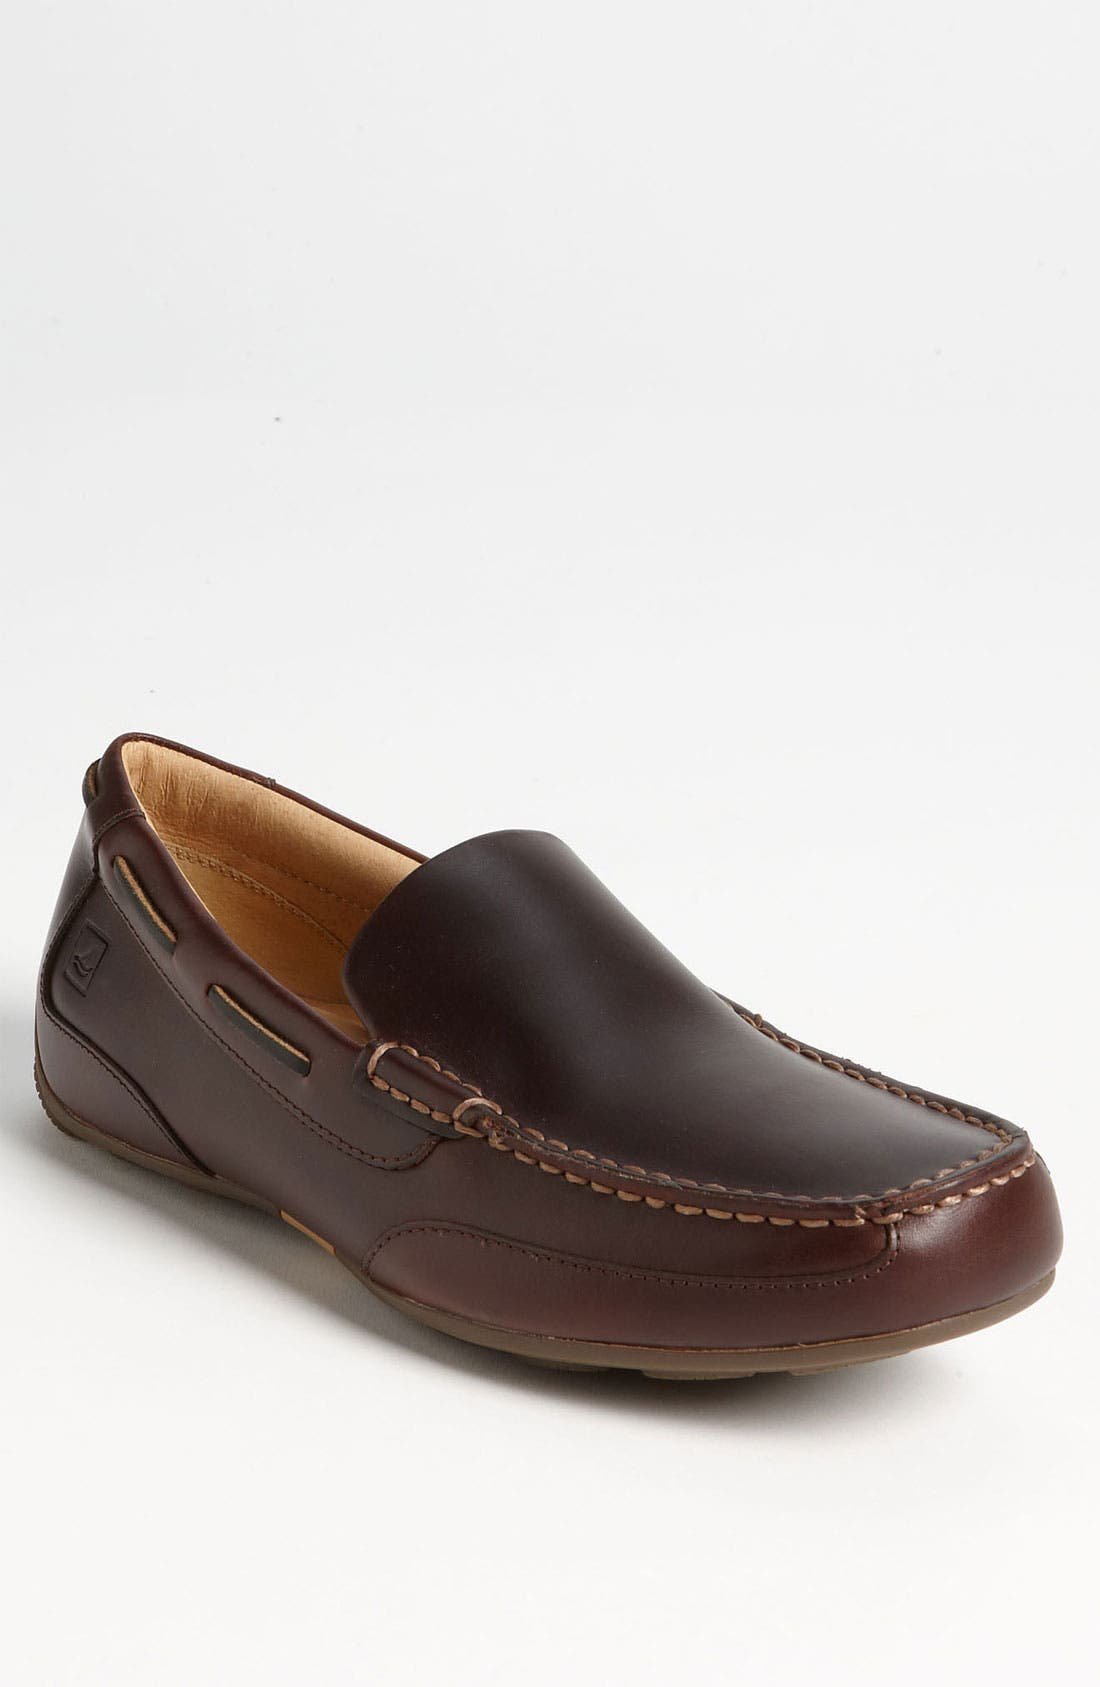 Alternate Image 1 Selected - Sperry Top-Sider® 'Navigator Venetian' Driving Shoe (Online Only)